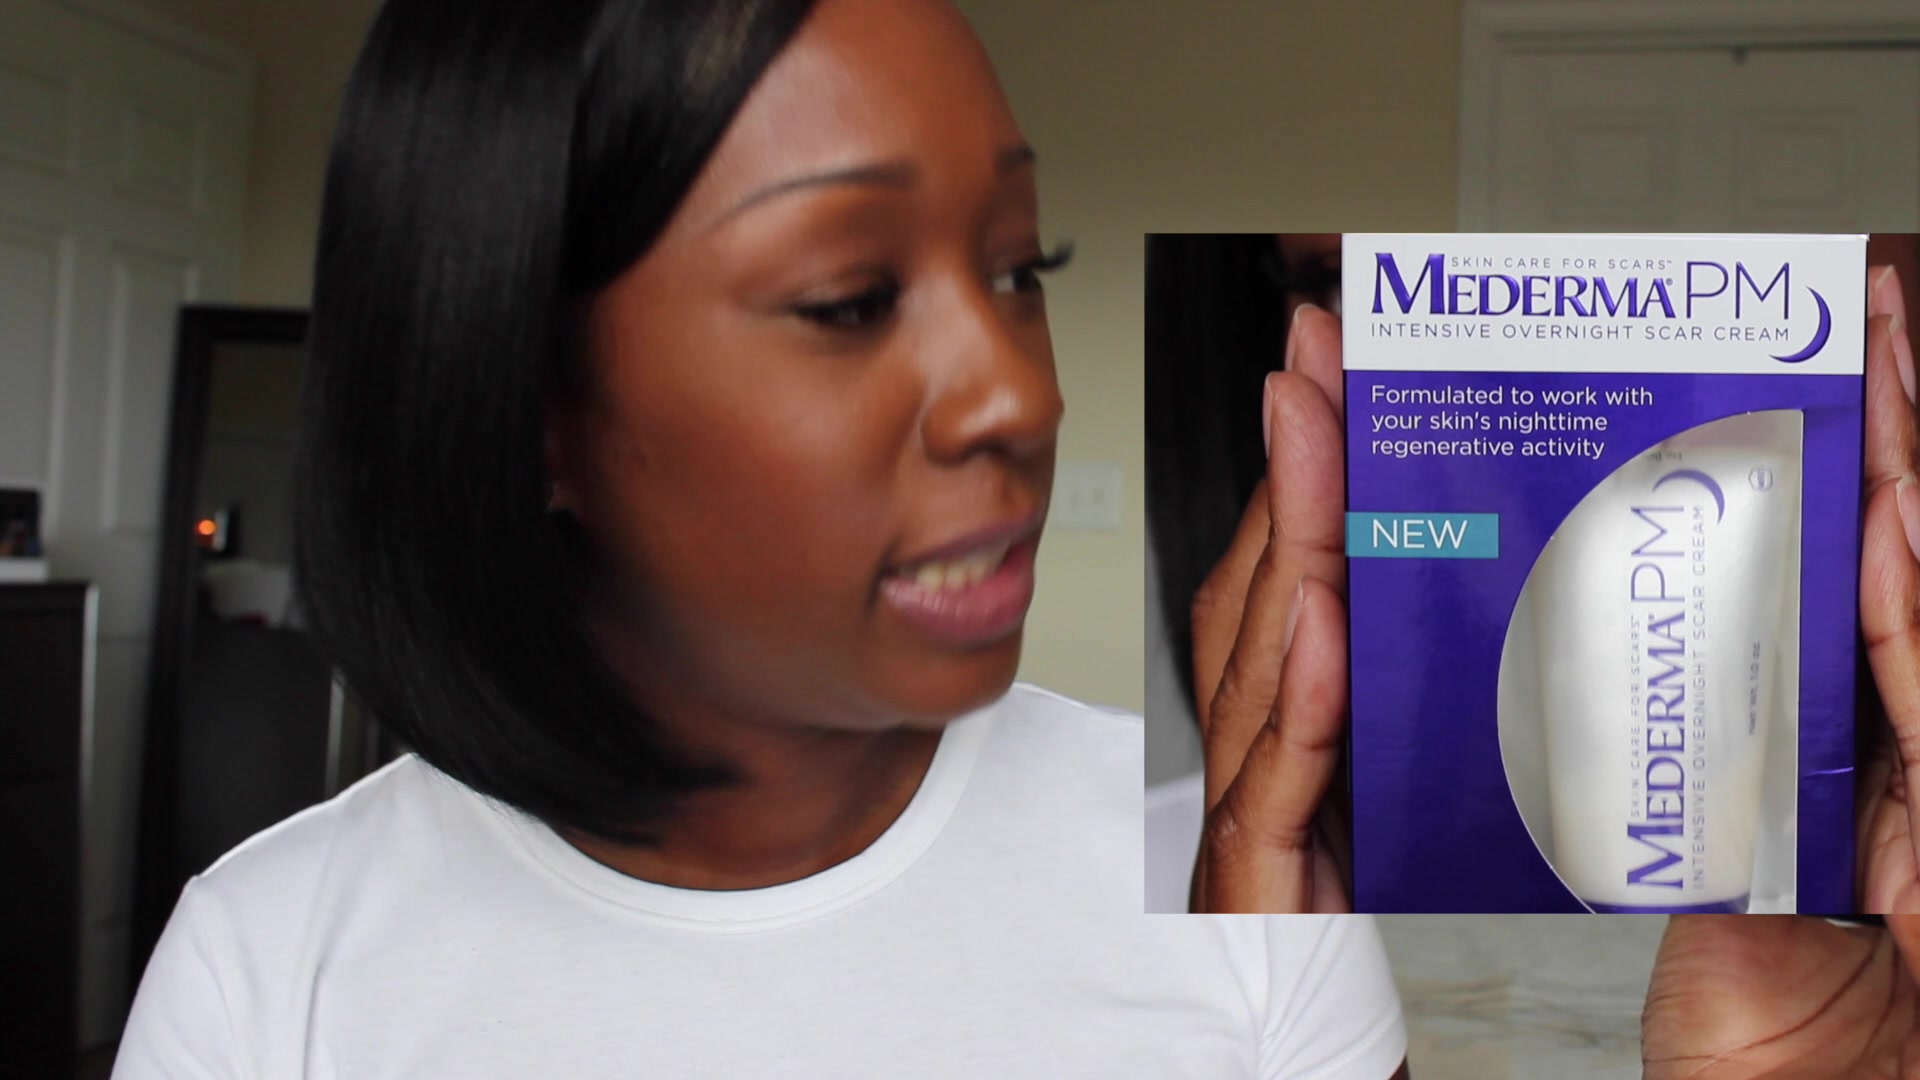 Mederma Pm Intensive Overnight Scar Cream Review And Recommendation